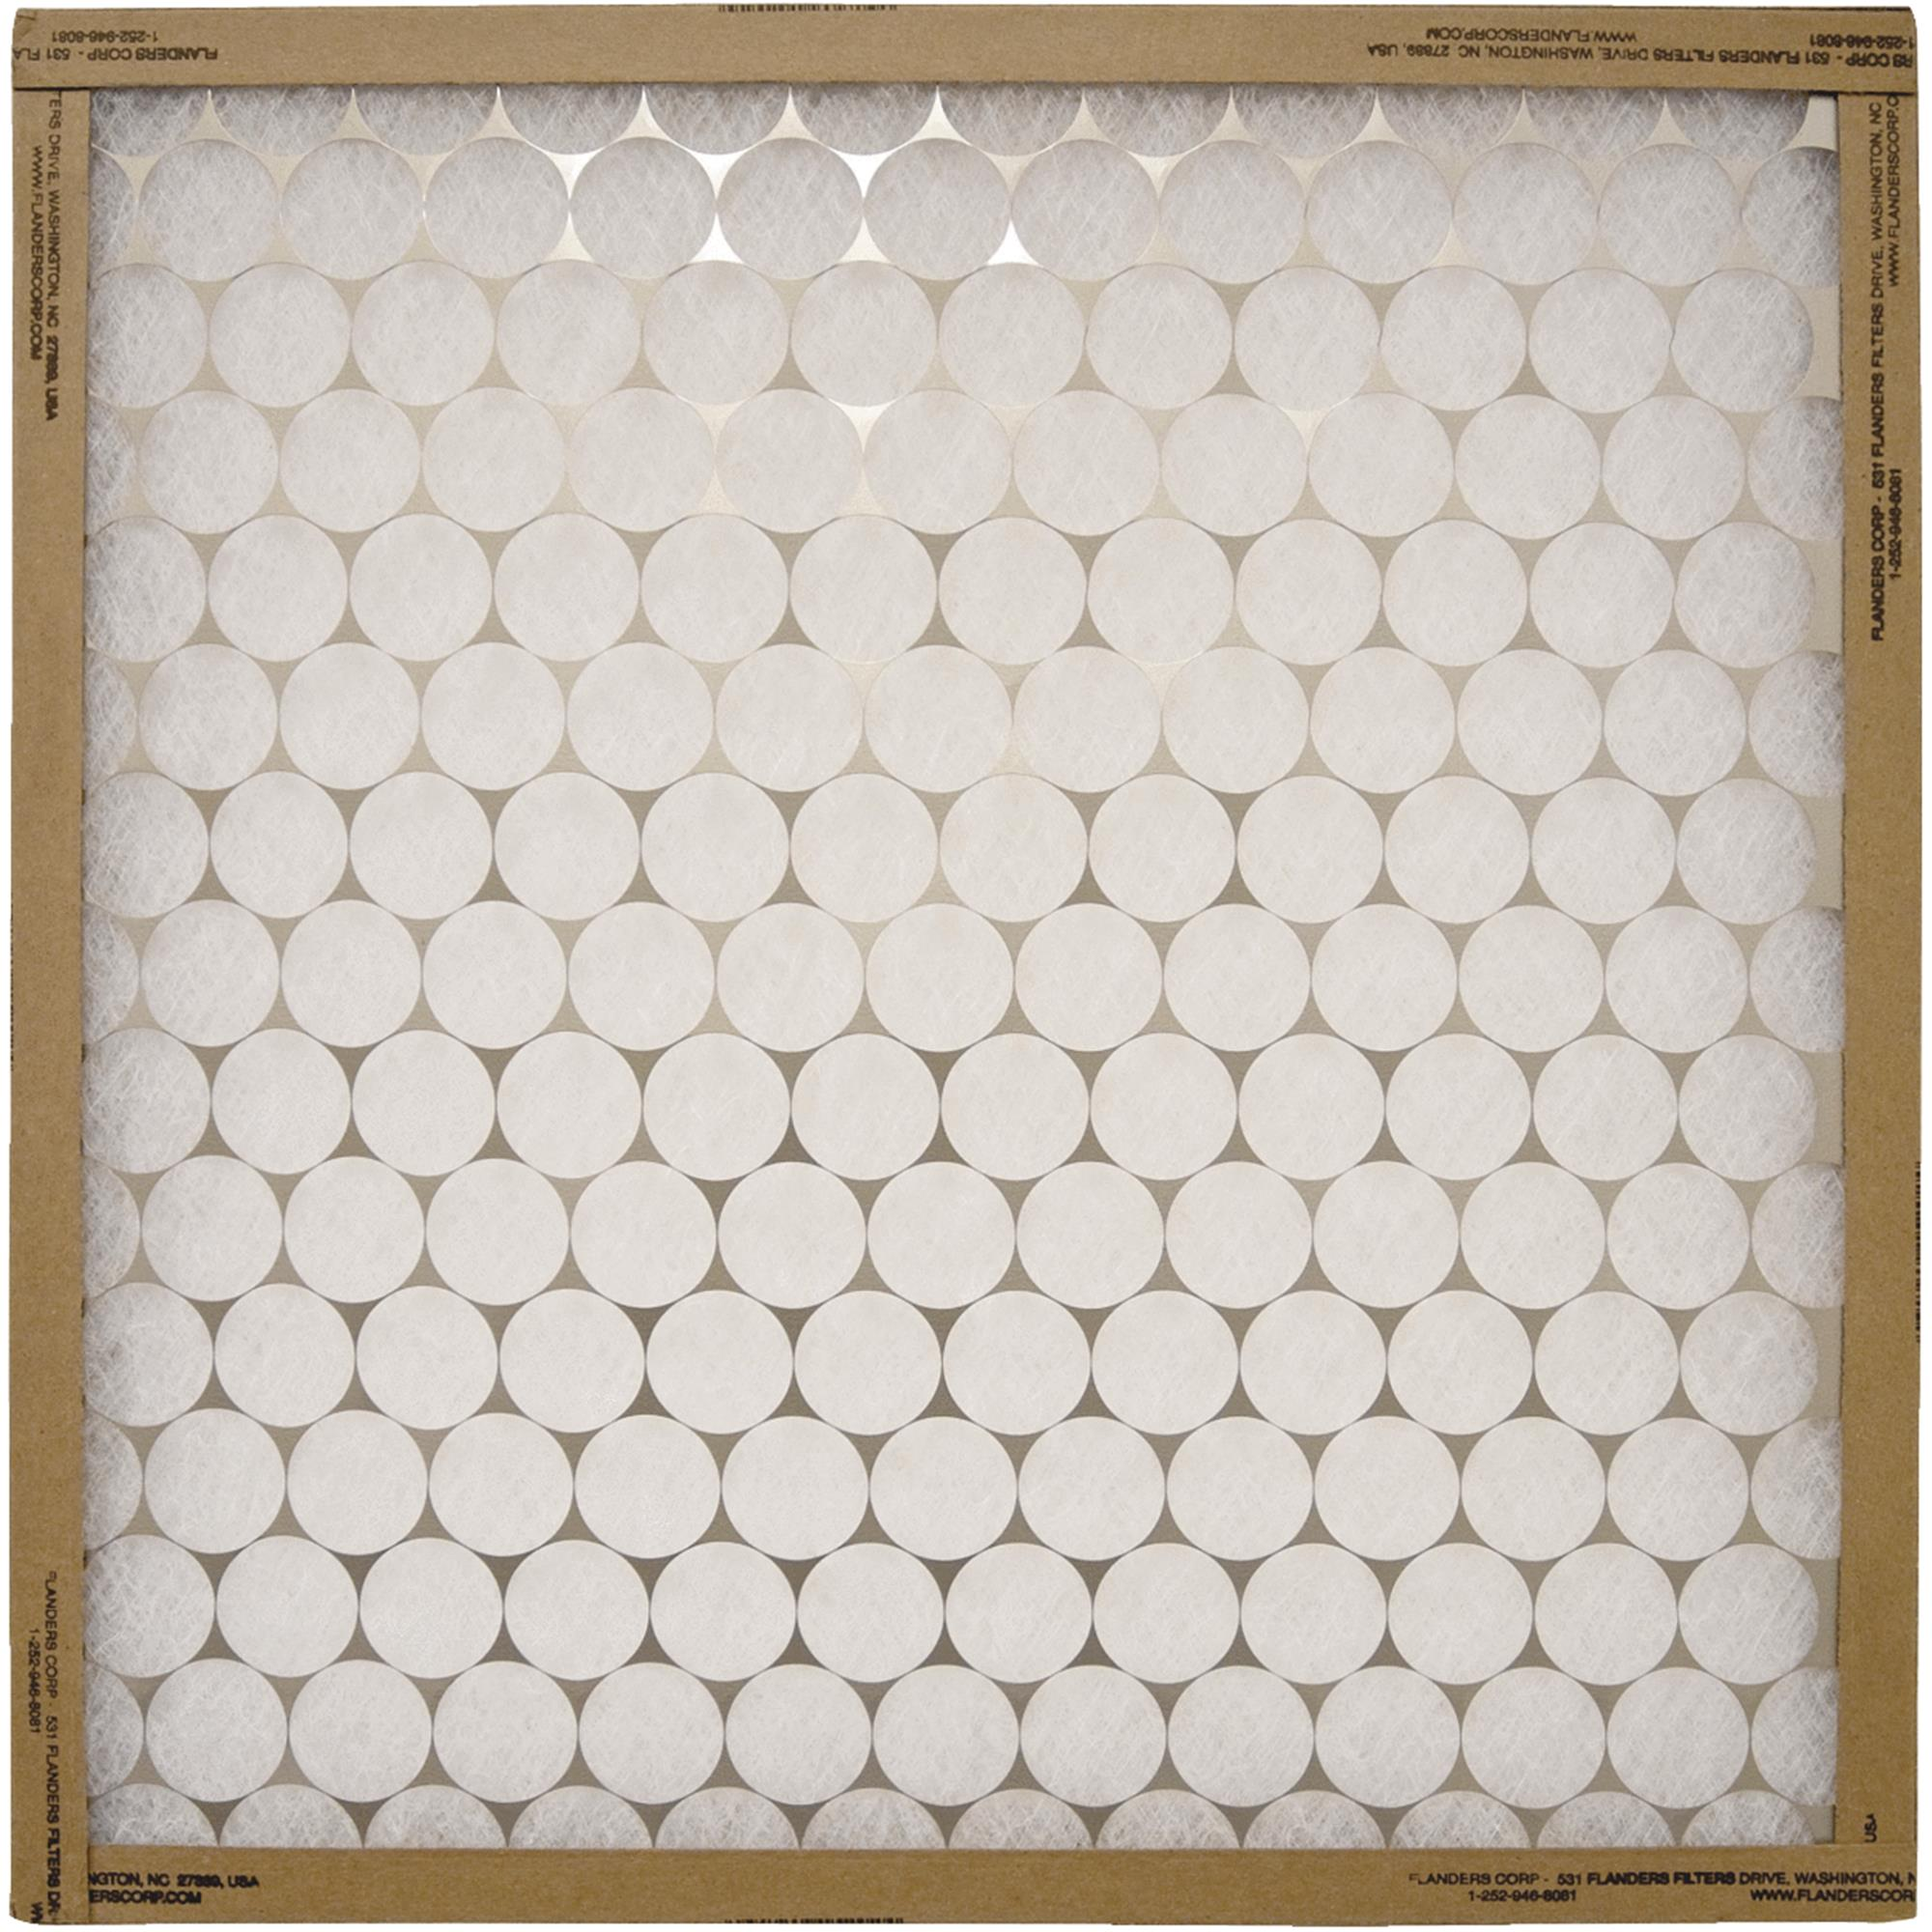 Flanders PrecisionAire Grille Furnace Filter